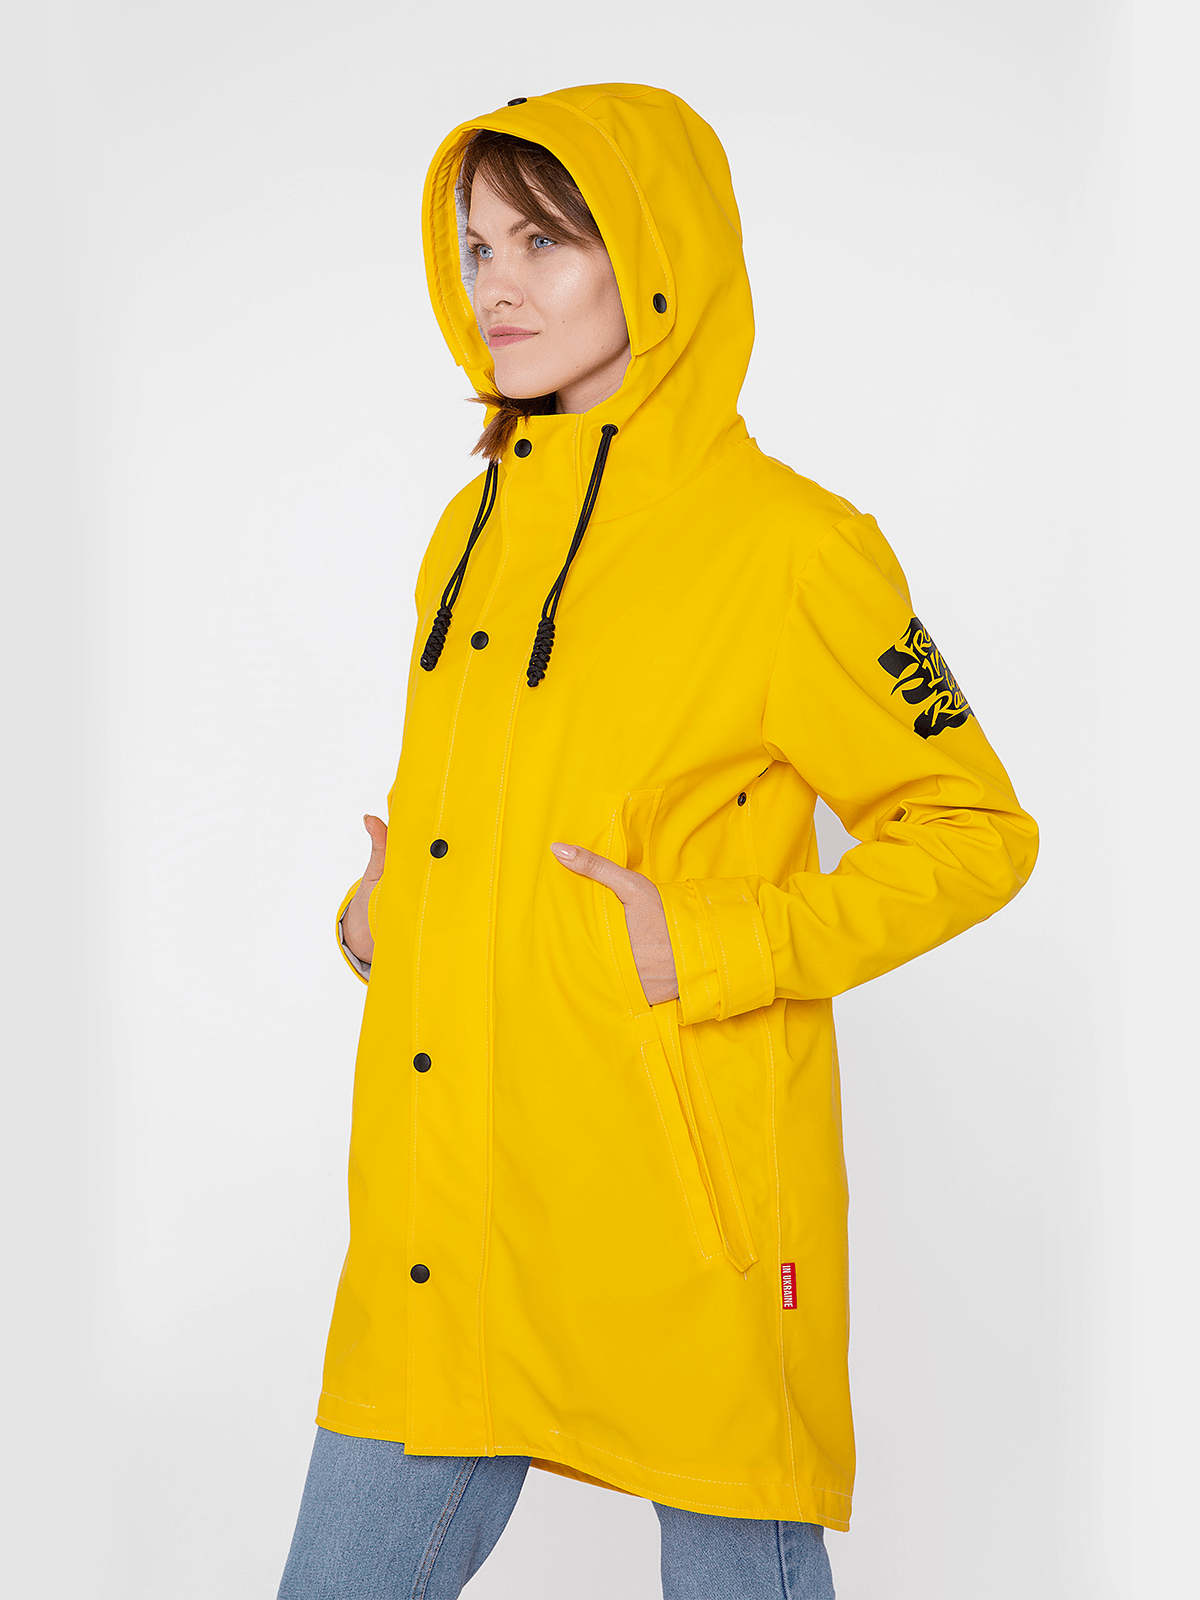 Women's Raincoat From Lviv With Rain. Color yellow.  Perfectly suitable for: – city tourism; – bad wet weather; – park, city or even countryside strolls; – everyday wearing.